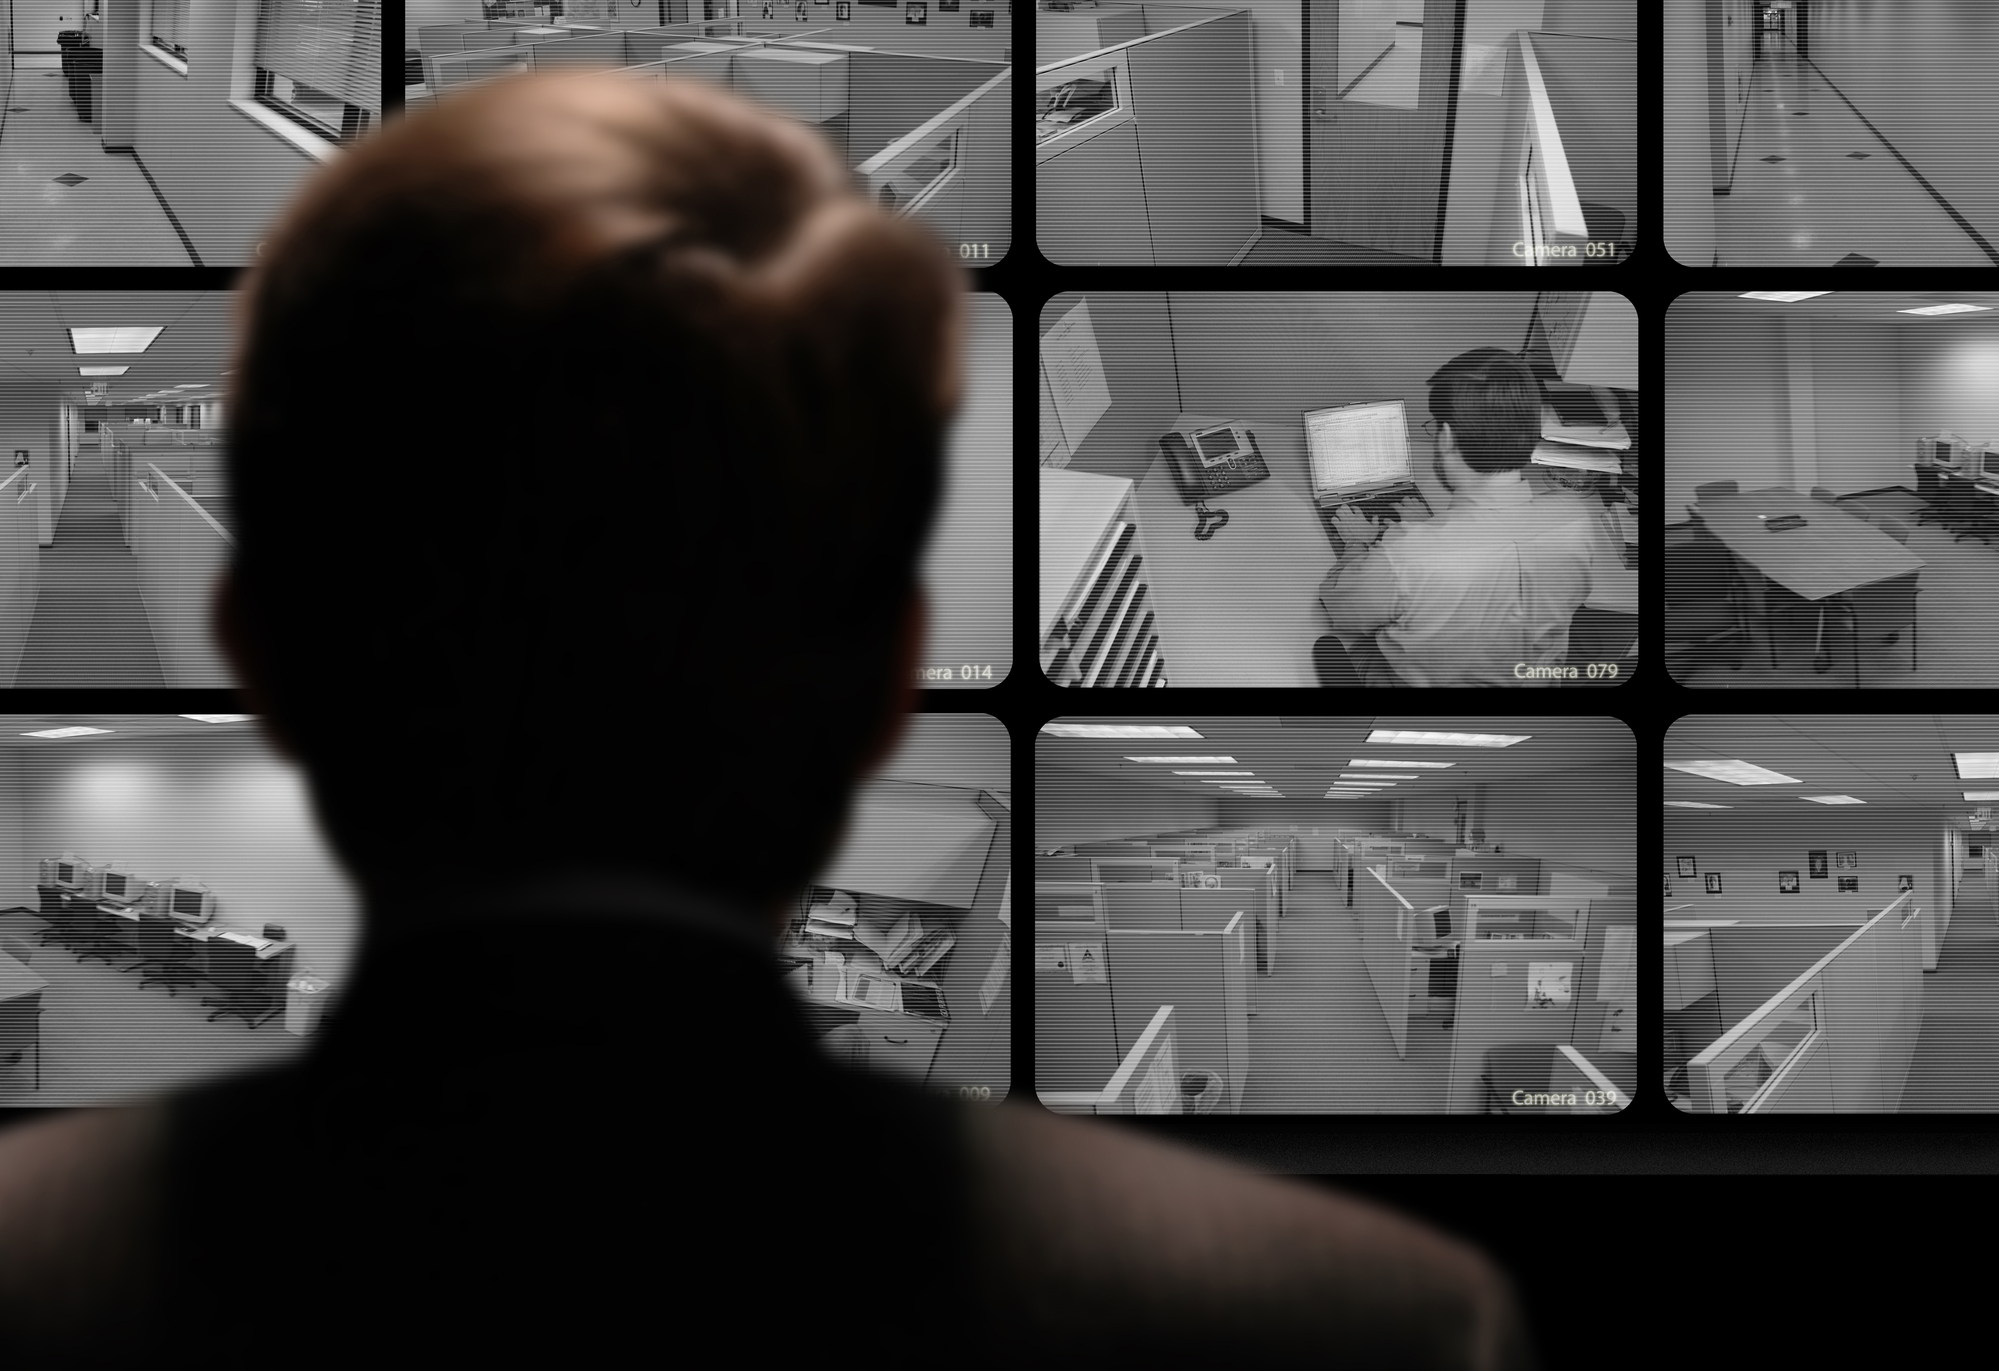 Over-the-shoulder view from behind a person in shadows observing an office via closed-circuit televisions and cameras.